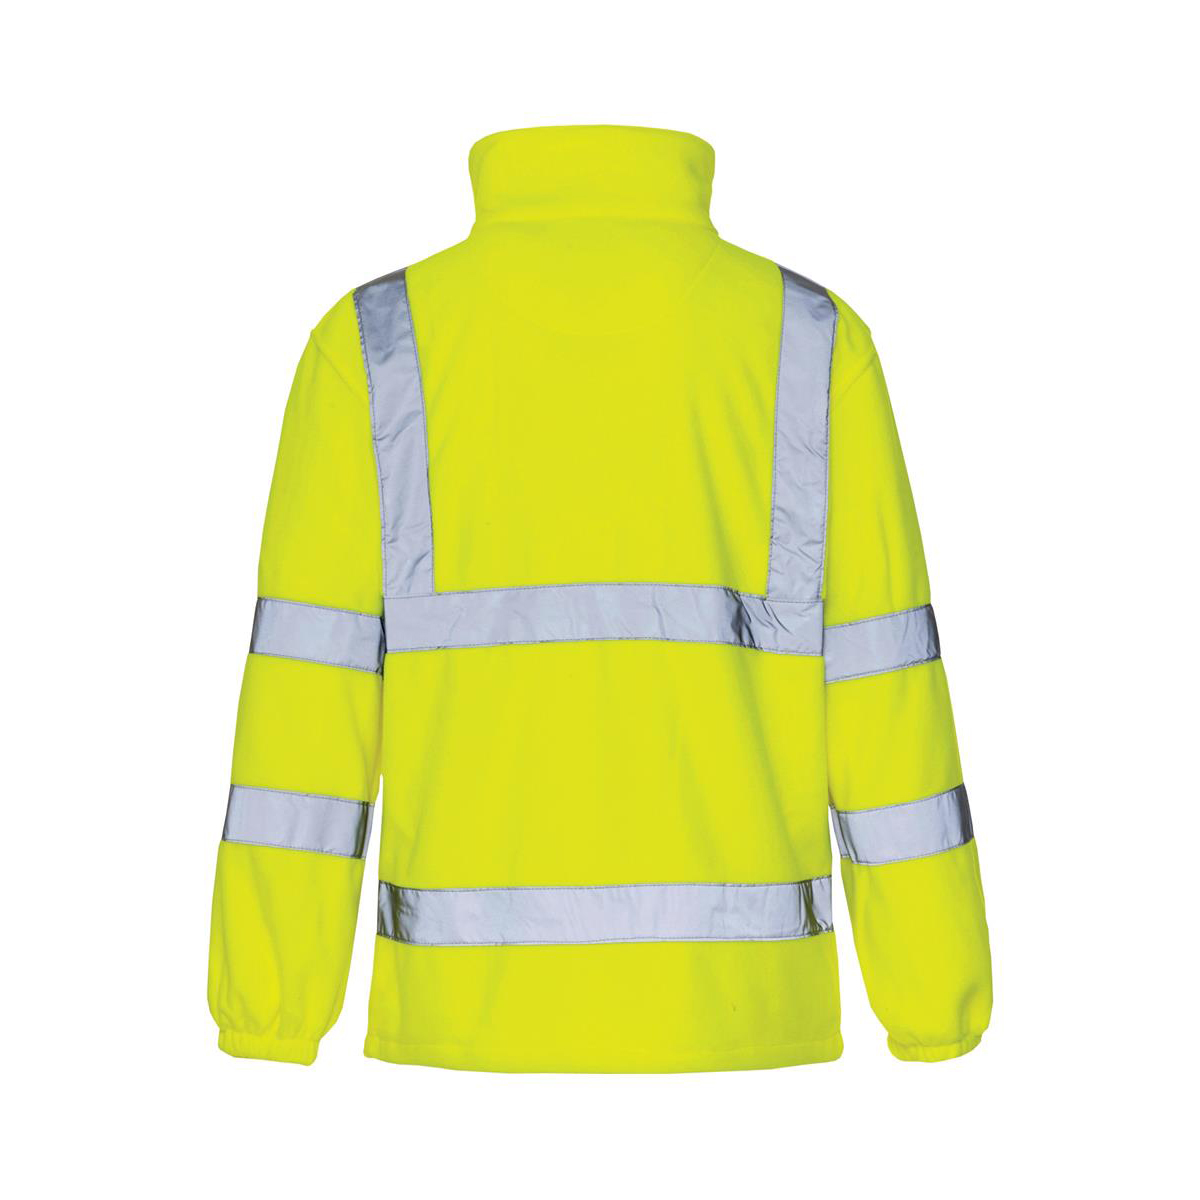 High-Vis Fleece Jacket Poly with Zip Fastening 3XL Yellow Ref CARFSYXXXL Approx 2/3 Day Leadtime